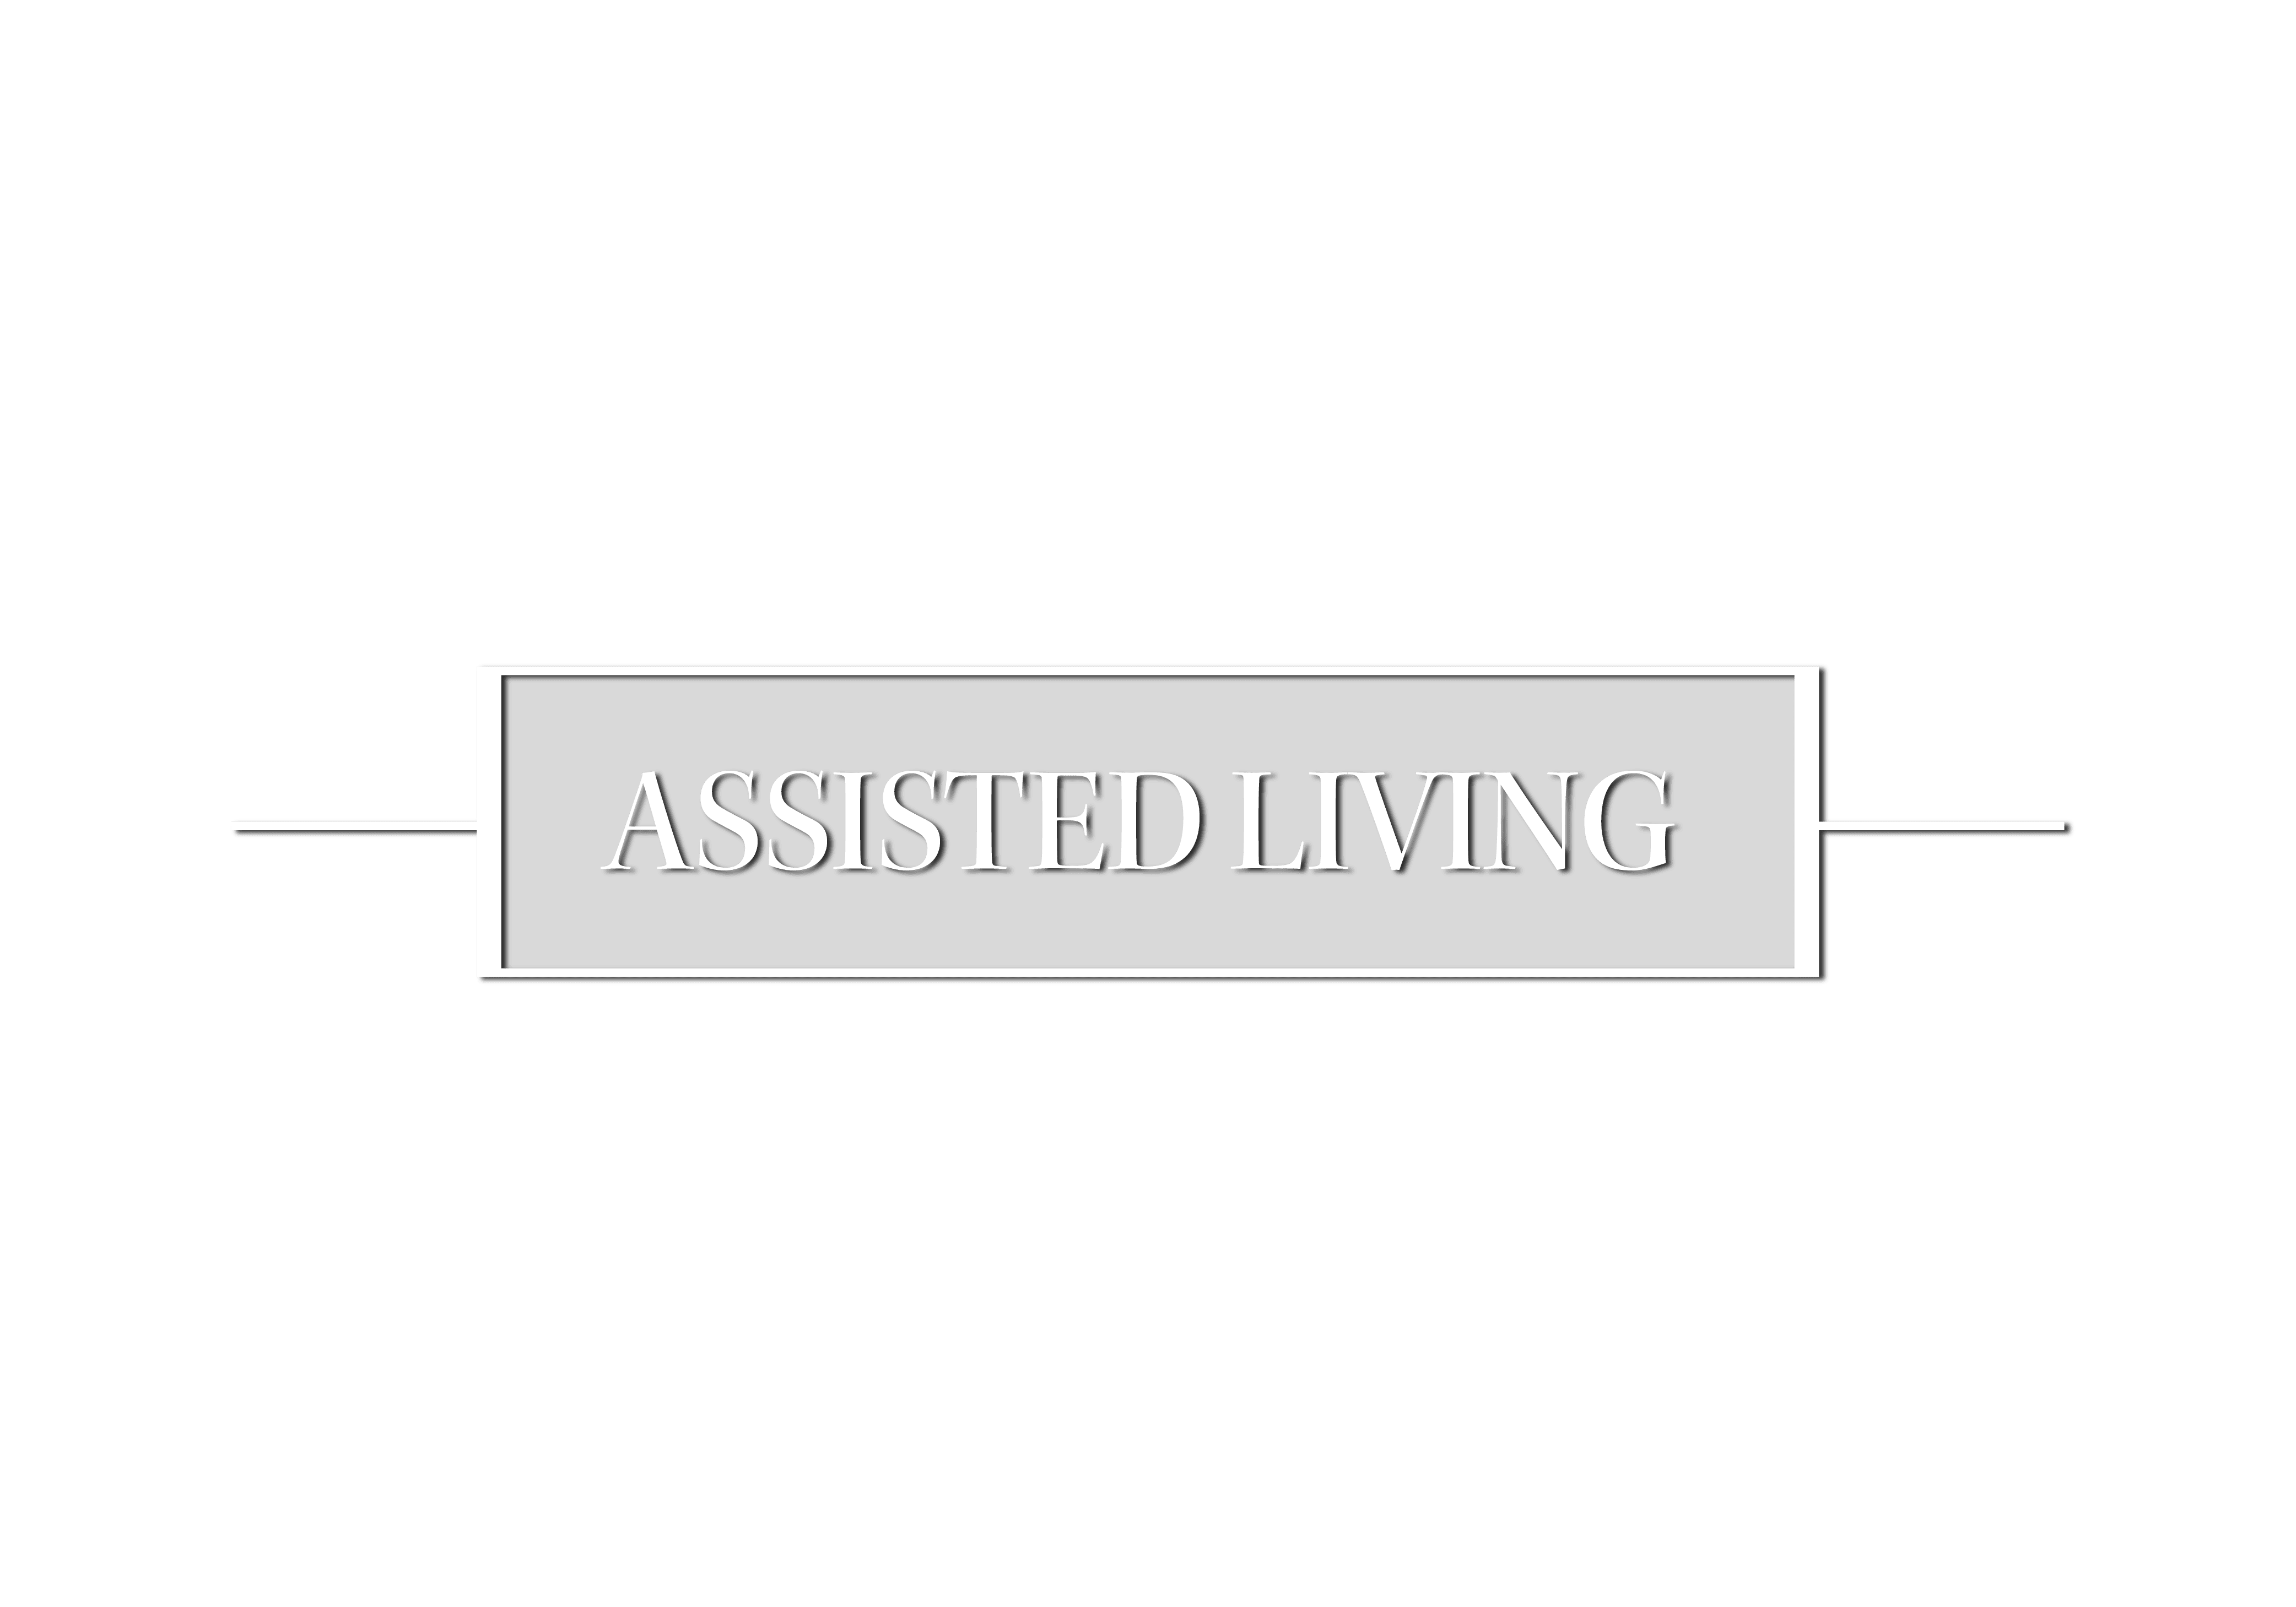 assisted living graphic